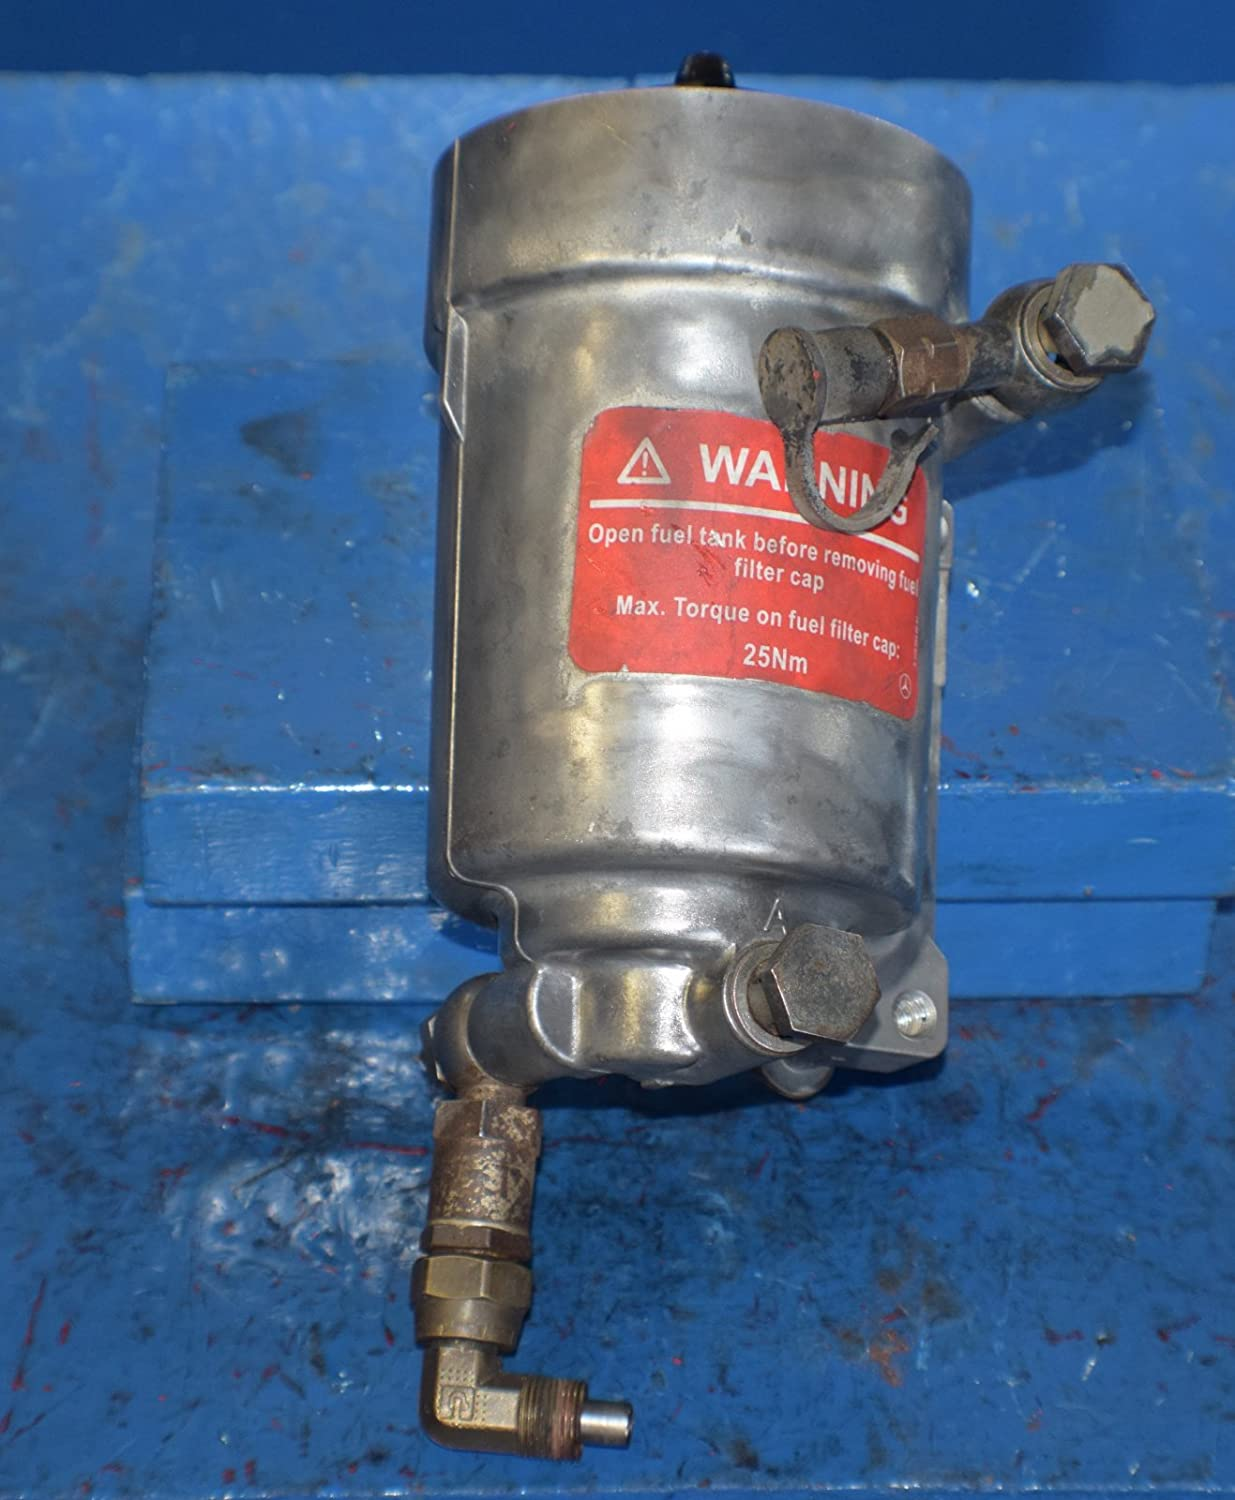 Mercedes Mbe4000 Engine Fuel Filter Base A5410920503 No Cap Core 4481 Everything Else